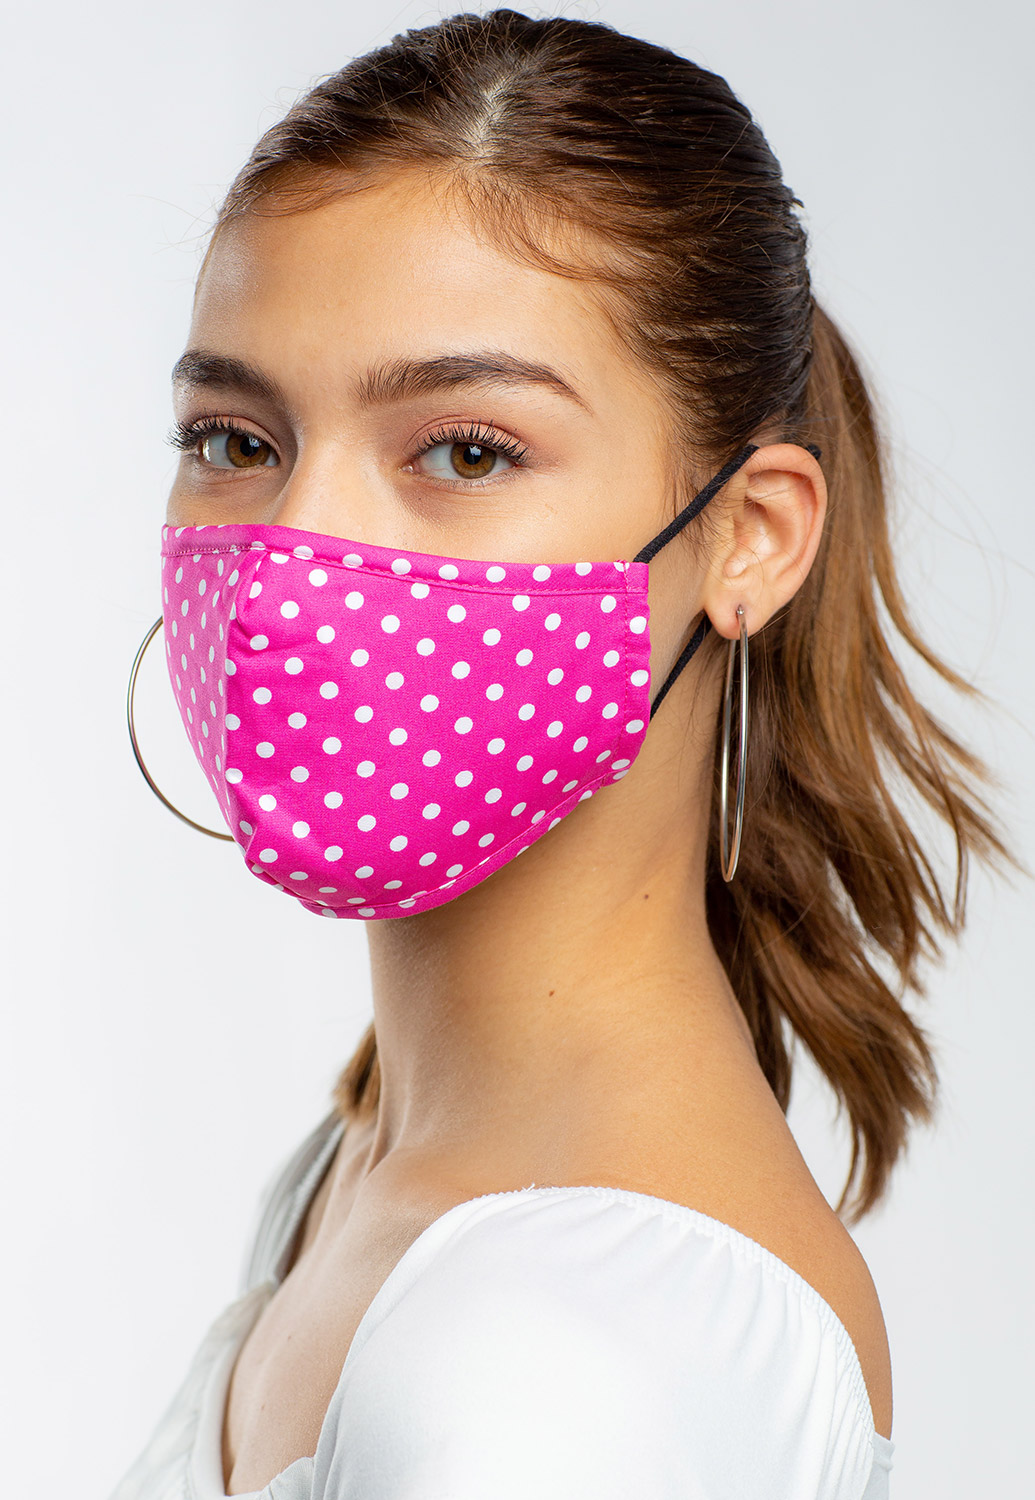 Polka Dot Facial Mask